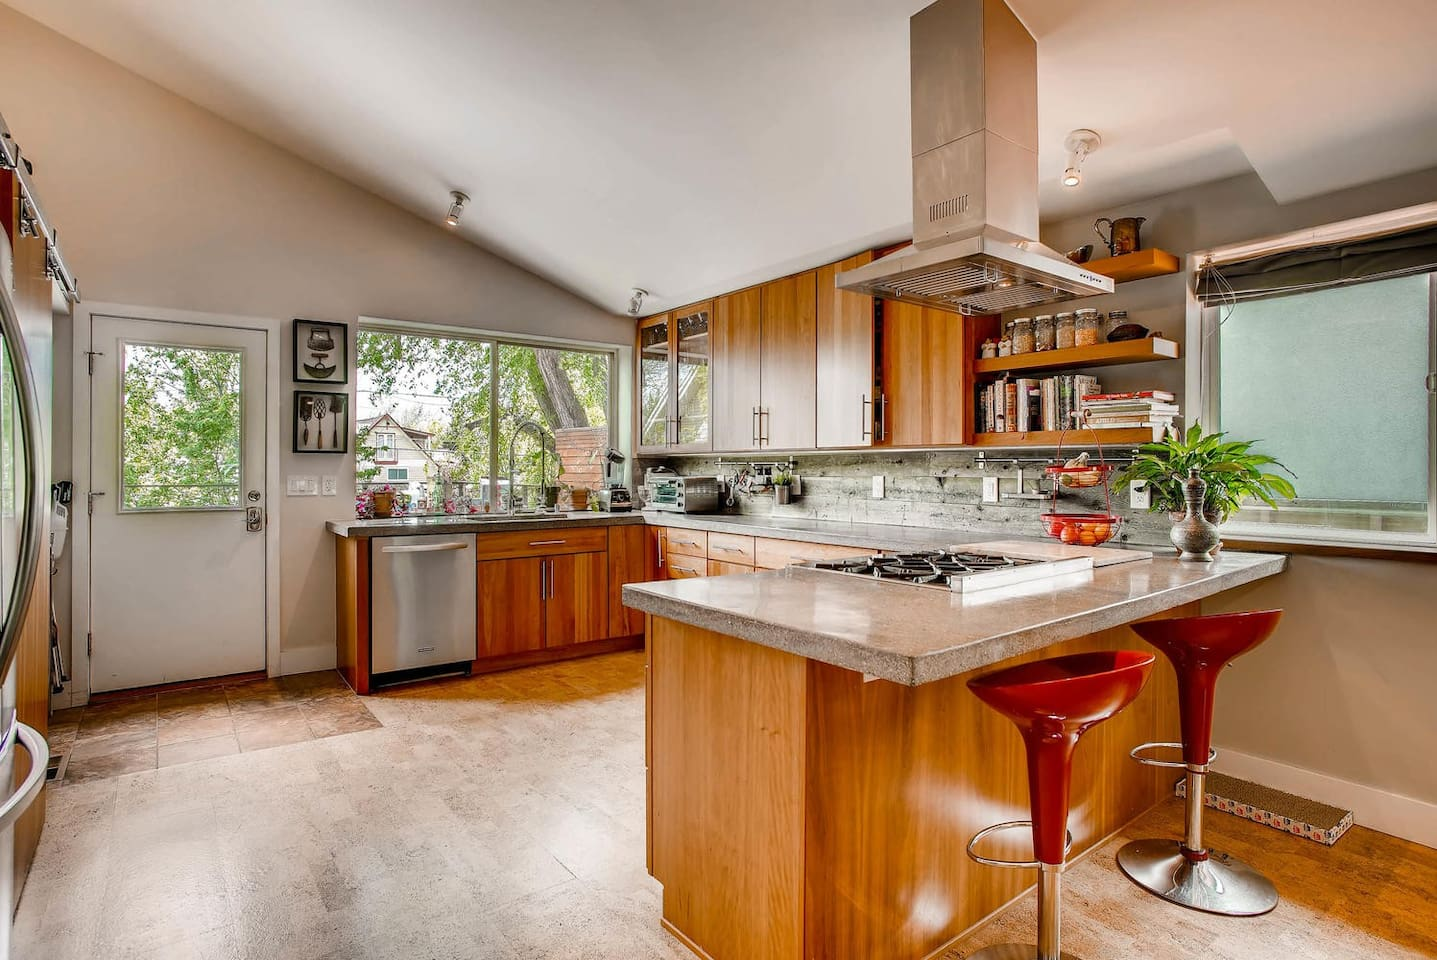 The kitchen is full of sunshine and tons of space